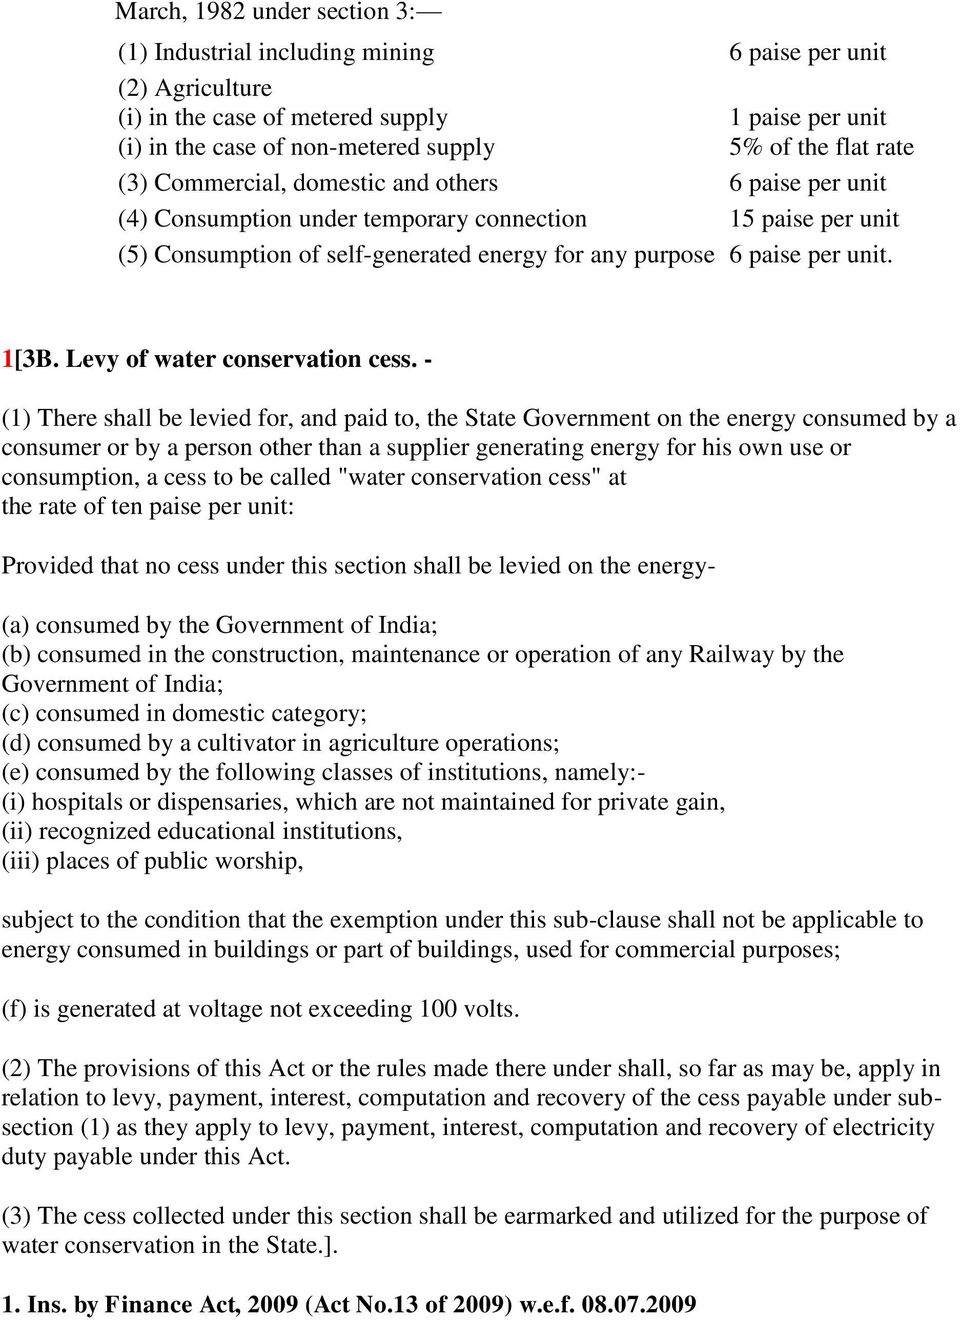 Levy of water conservation cess.